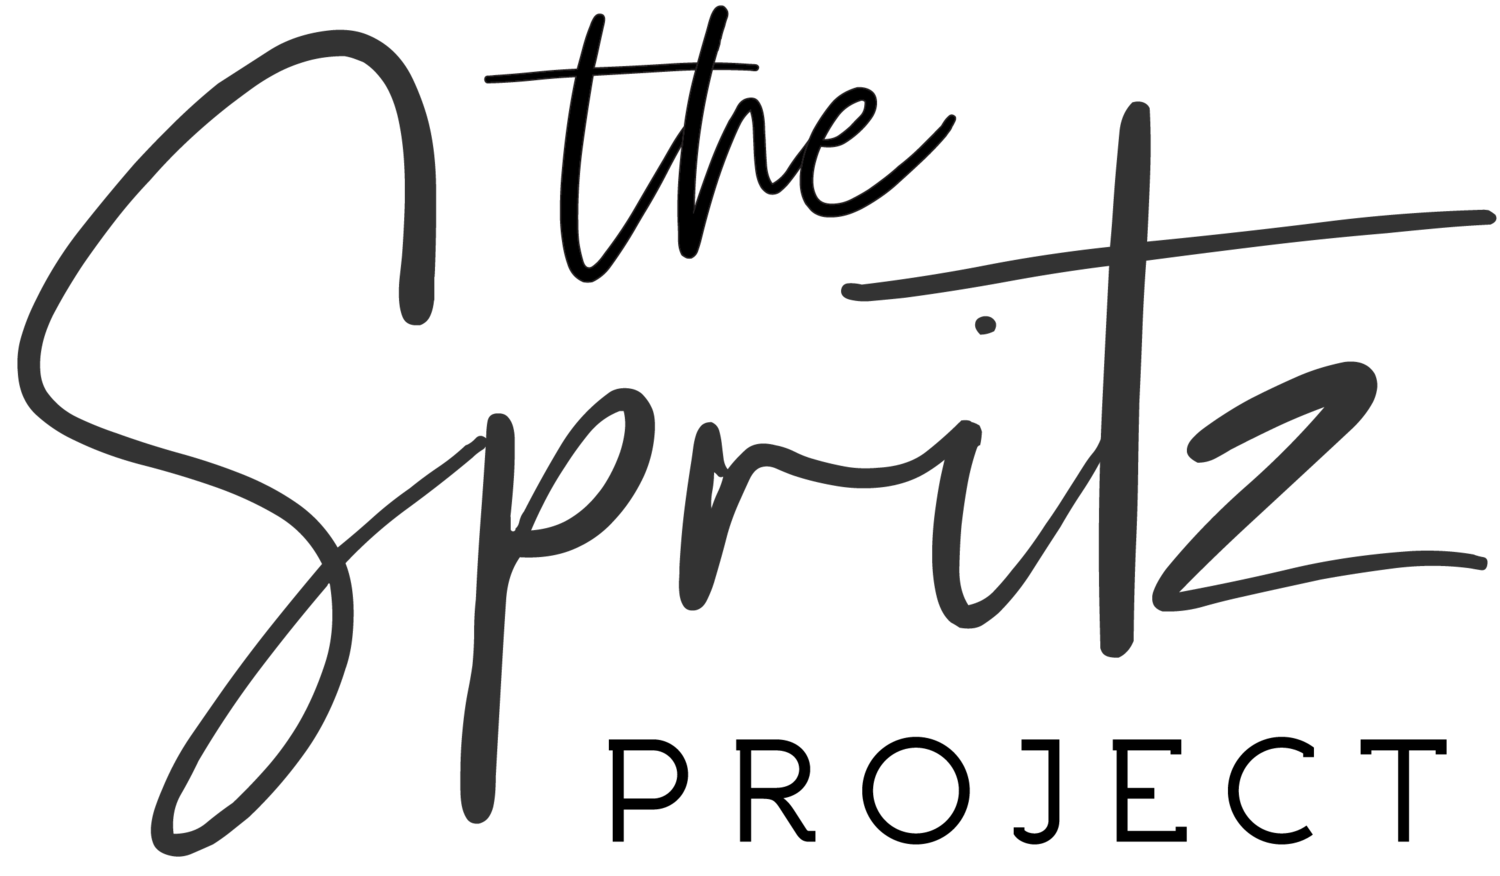 The Spritz Project